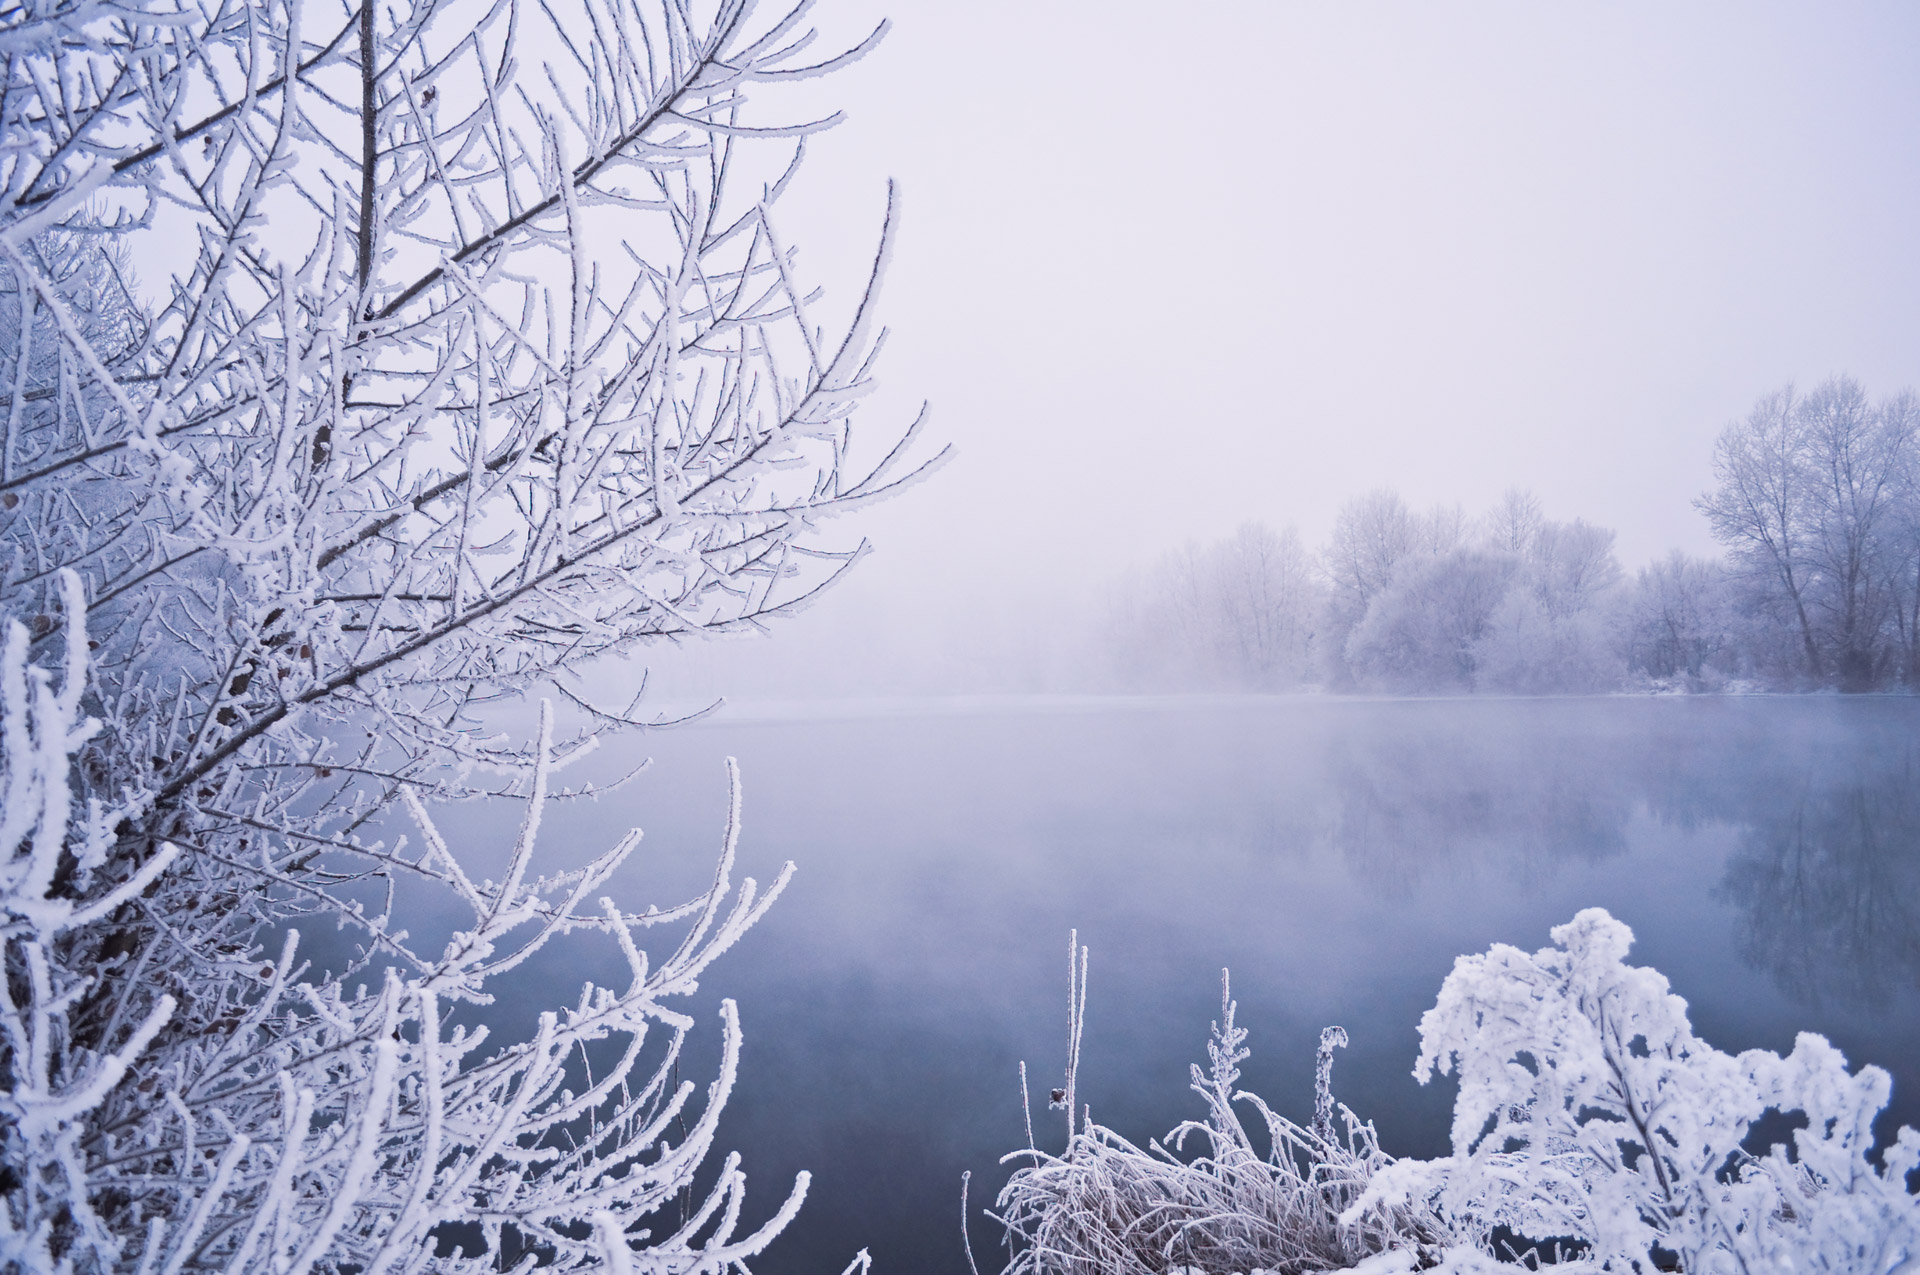 Winter Fog Free Stock Photo - Public Domain Pictures